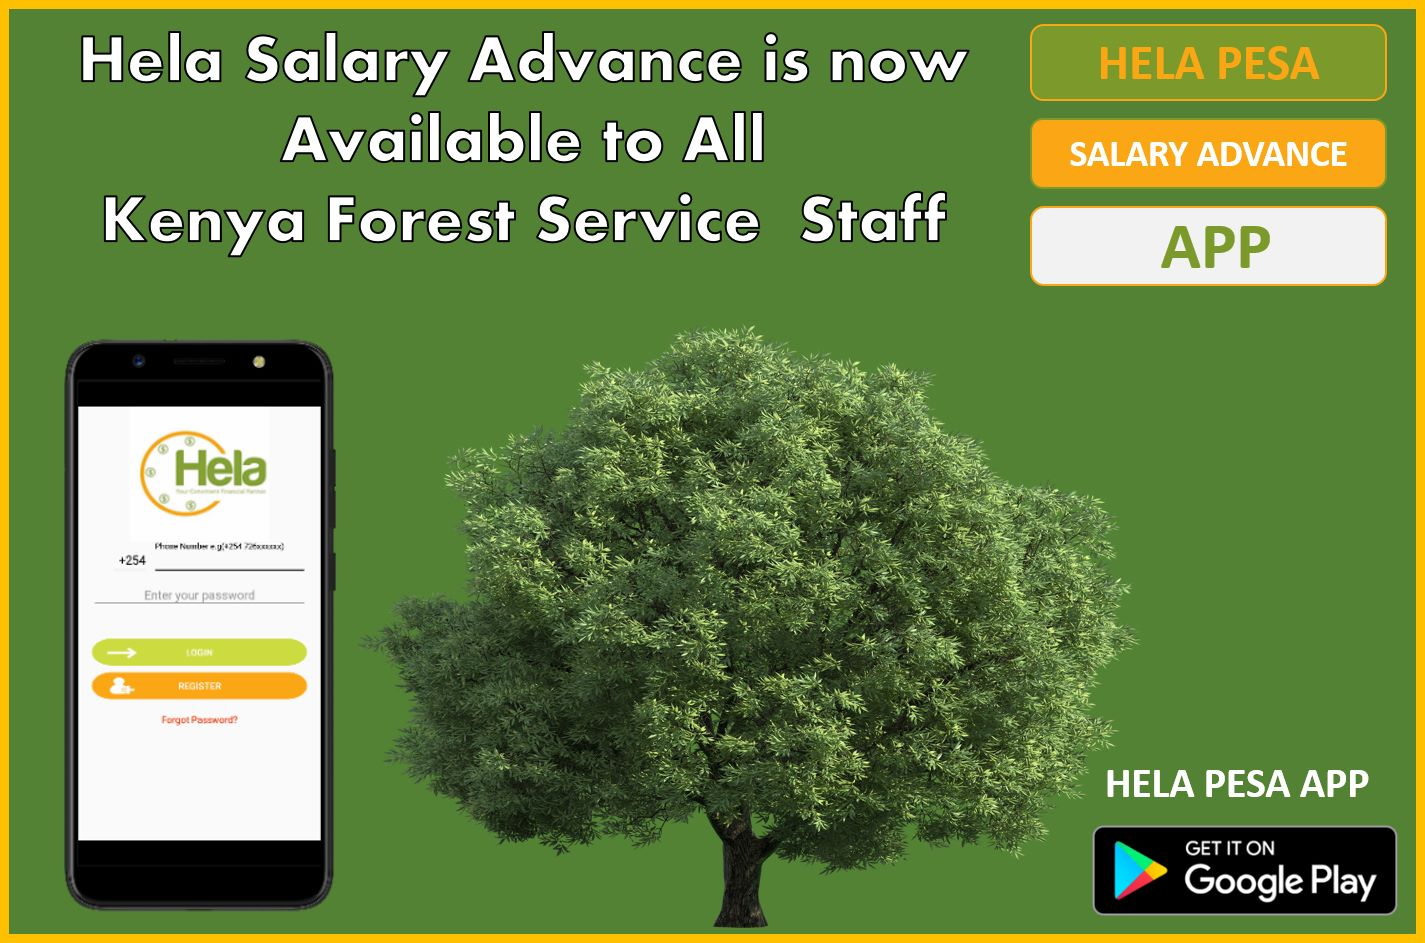 Kenya Forest Services